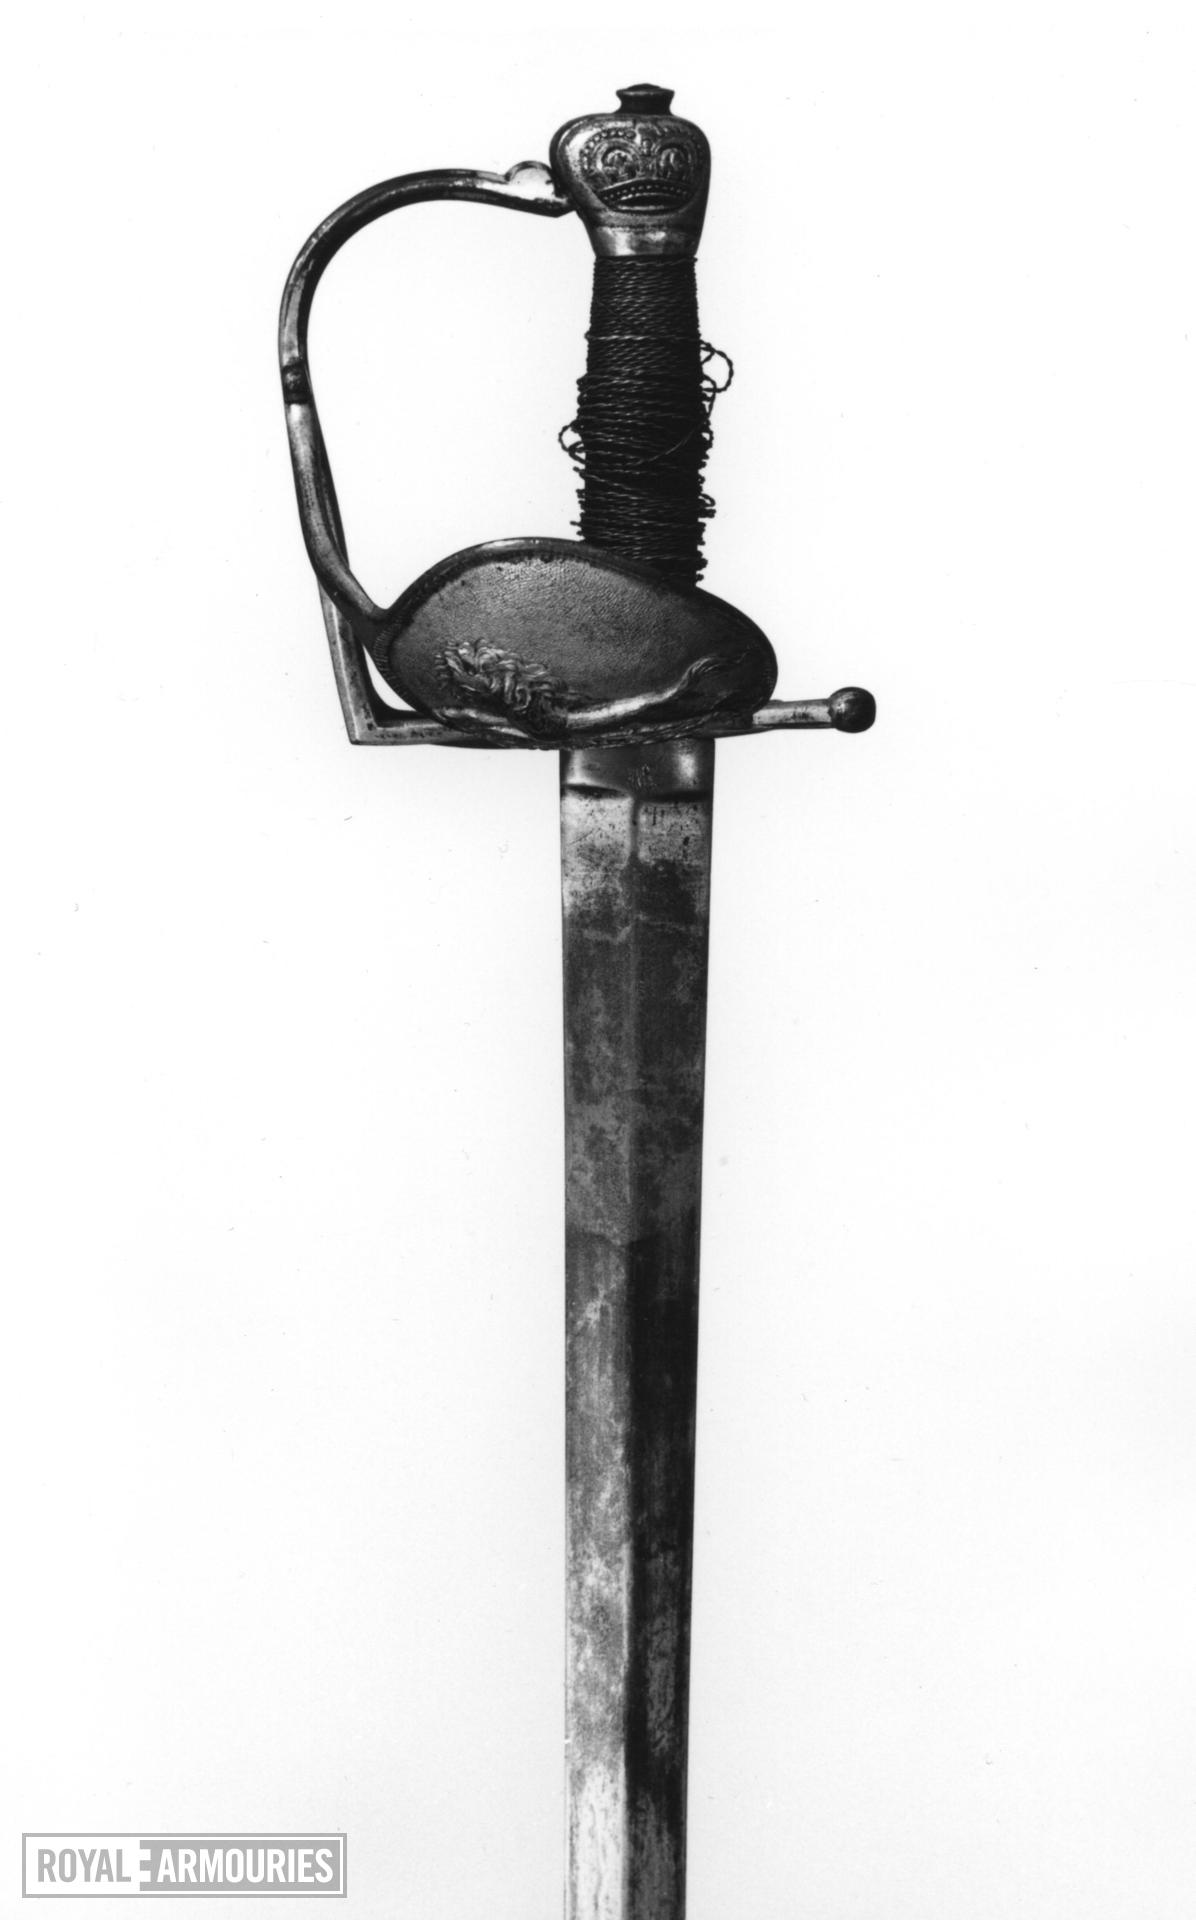 Sword Yeoman Warder's sword